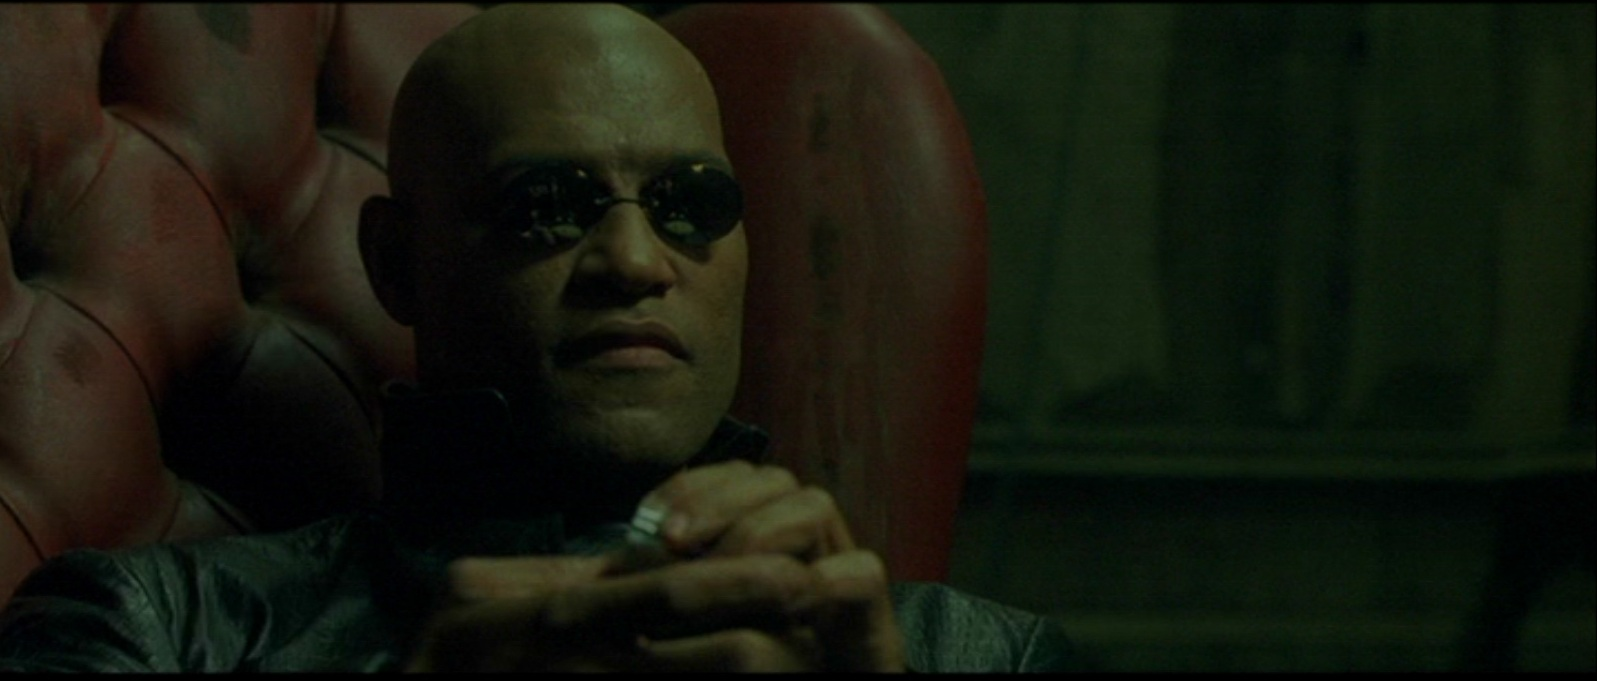 Morpheus trinity and neos journey to success in the matrix